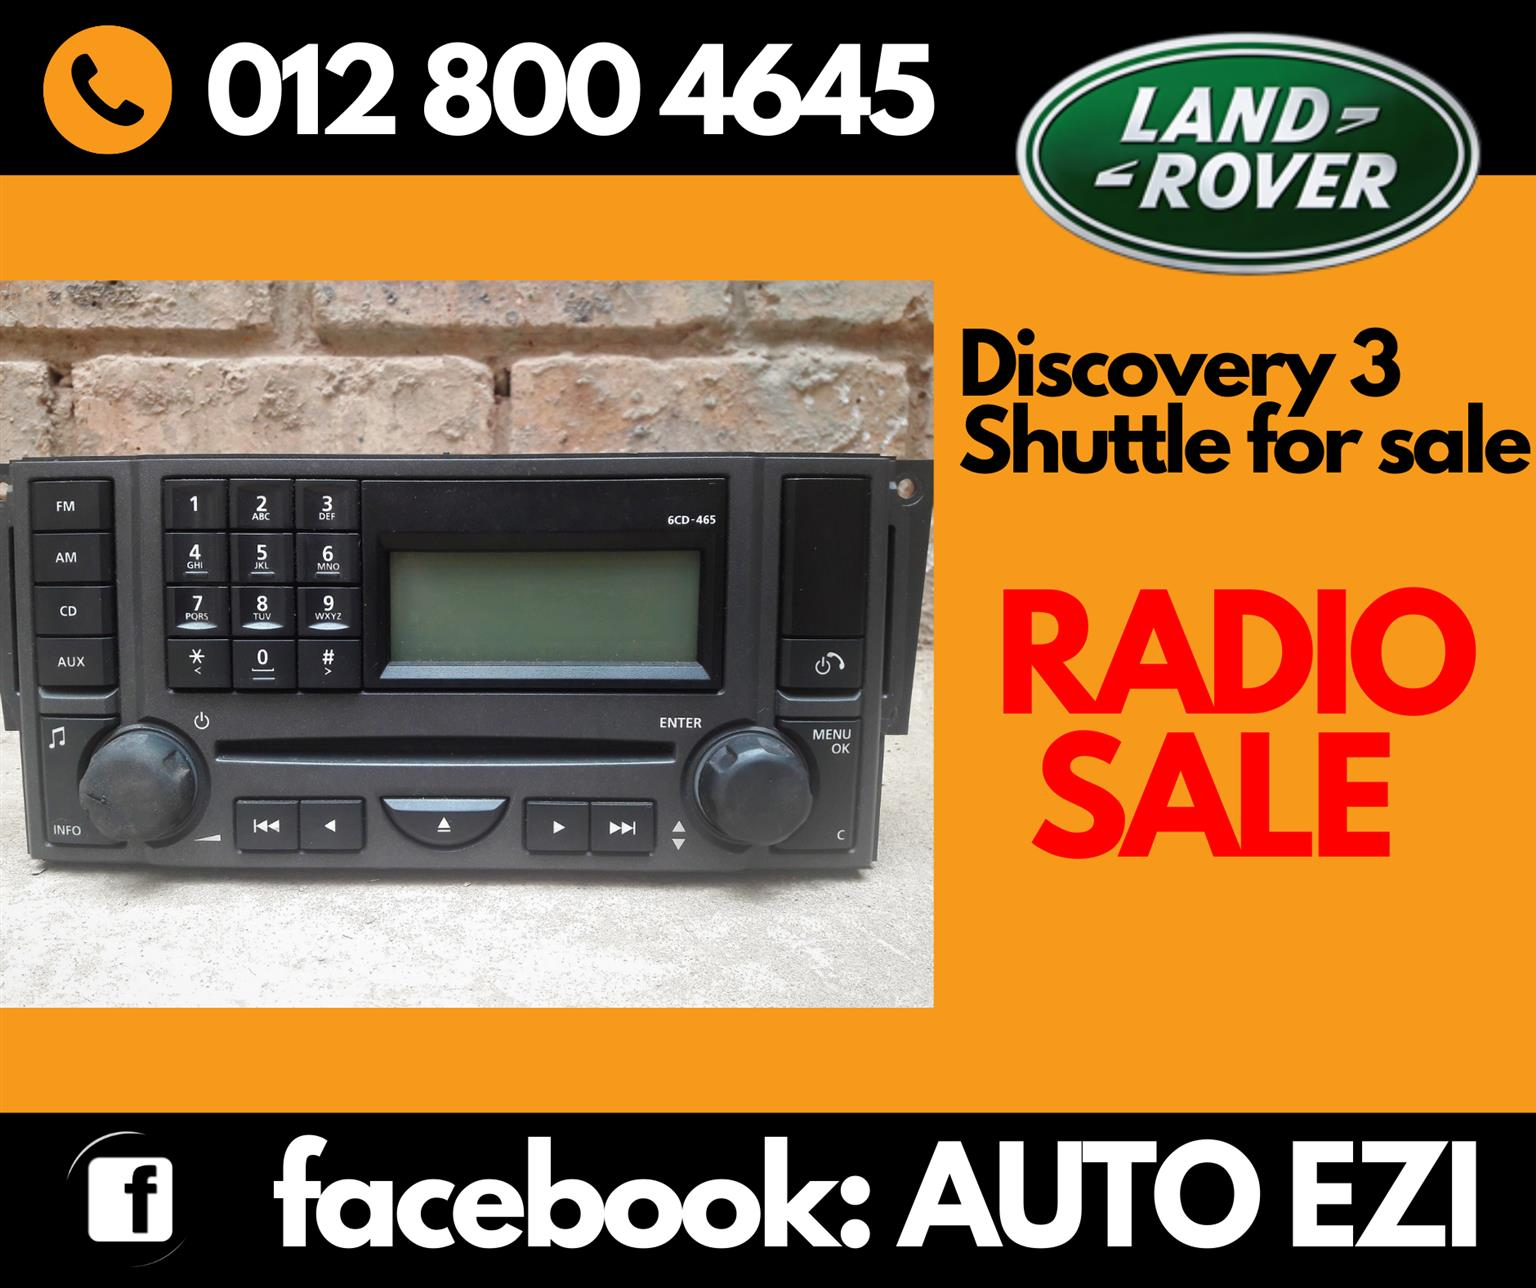 Land Rover Discovery 3 Shuttle Radio For Sale